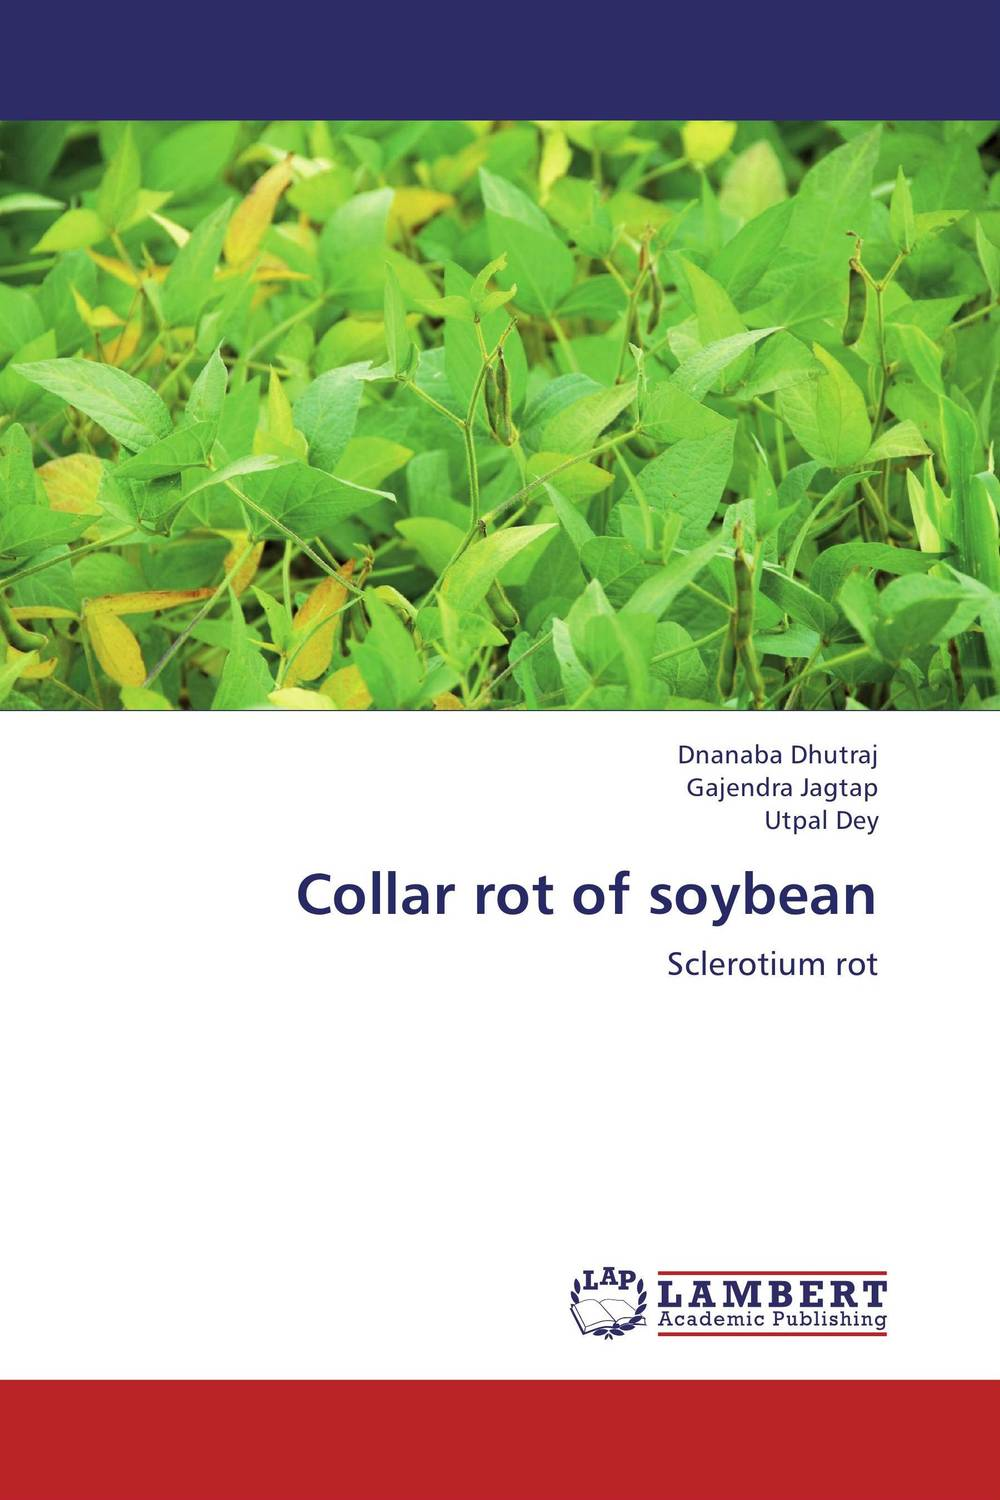 Collar rot of soybean found in brooklyn